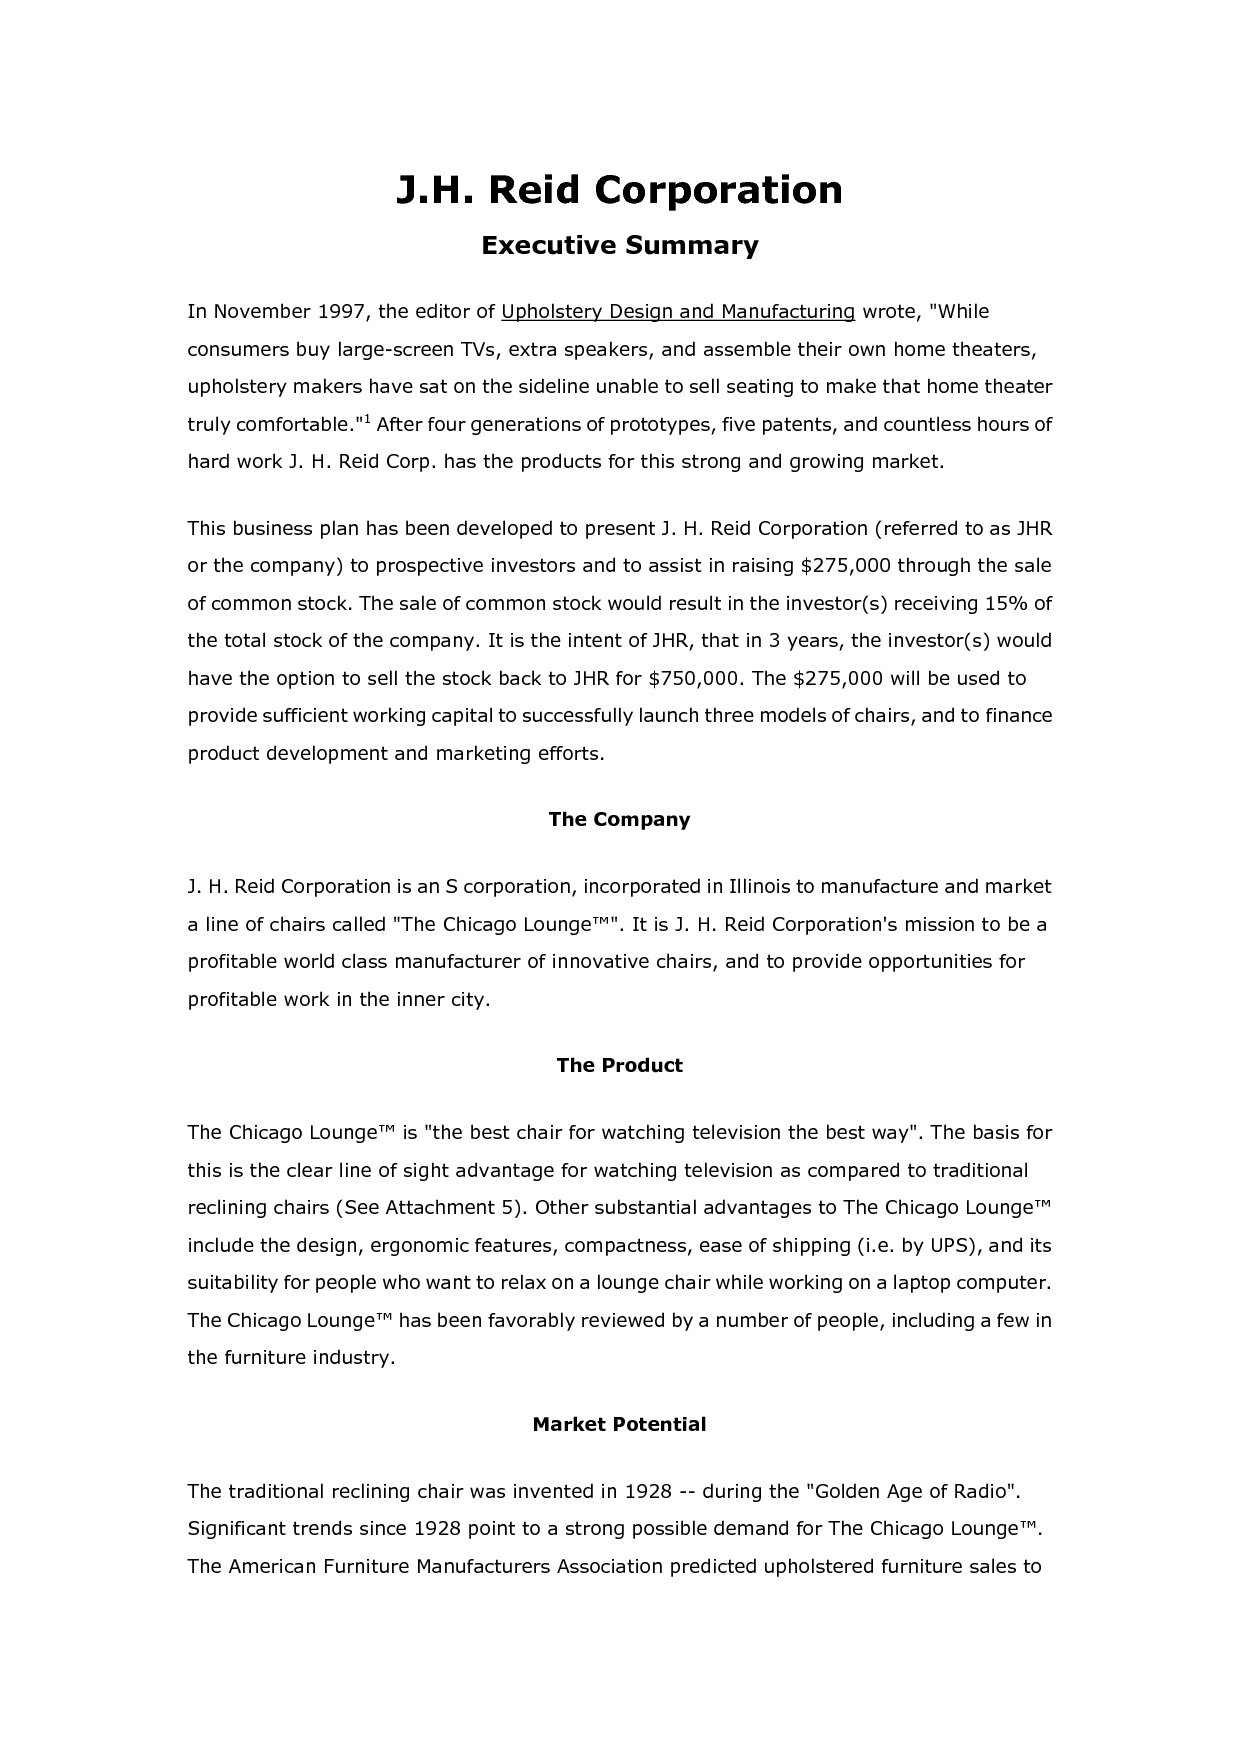 esays essay topics for class essay about community service  proposal essays essay examples socialsci ideas for proposal essay examples socialsci co write commentary essay